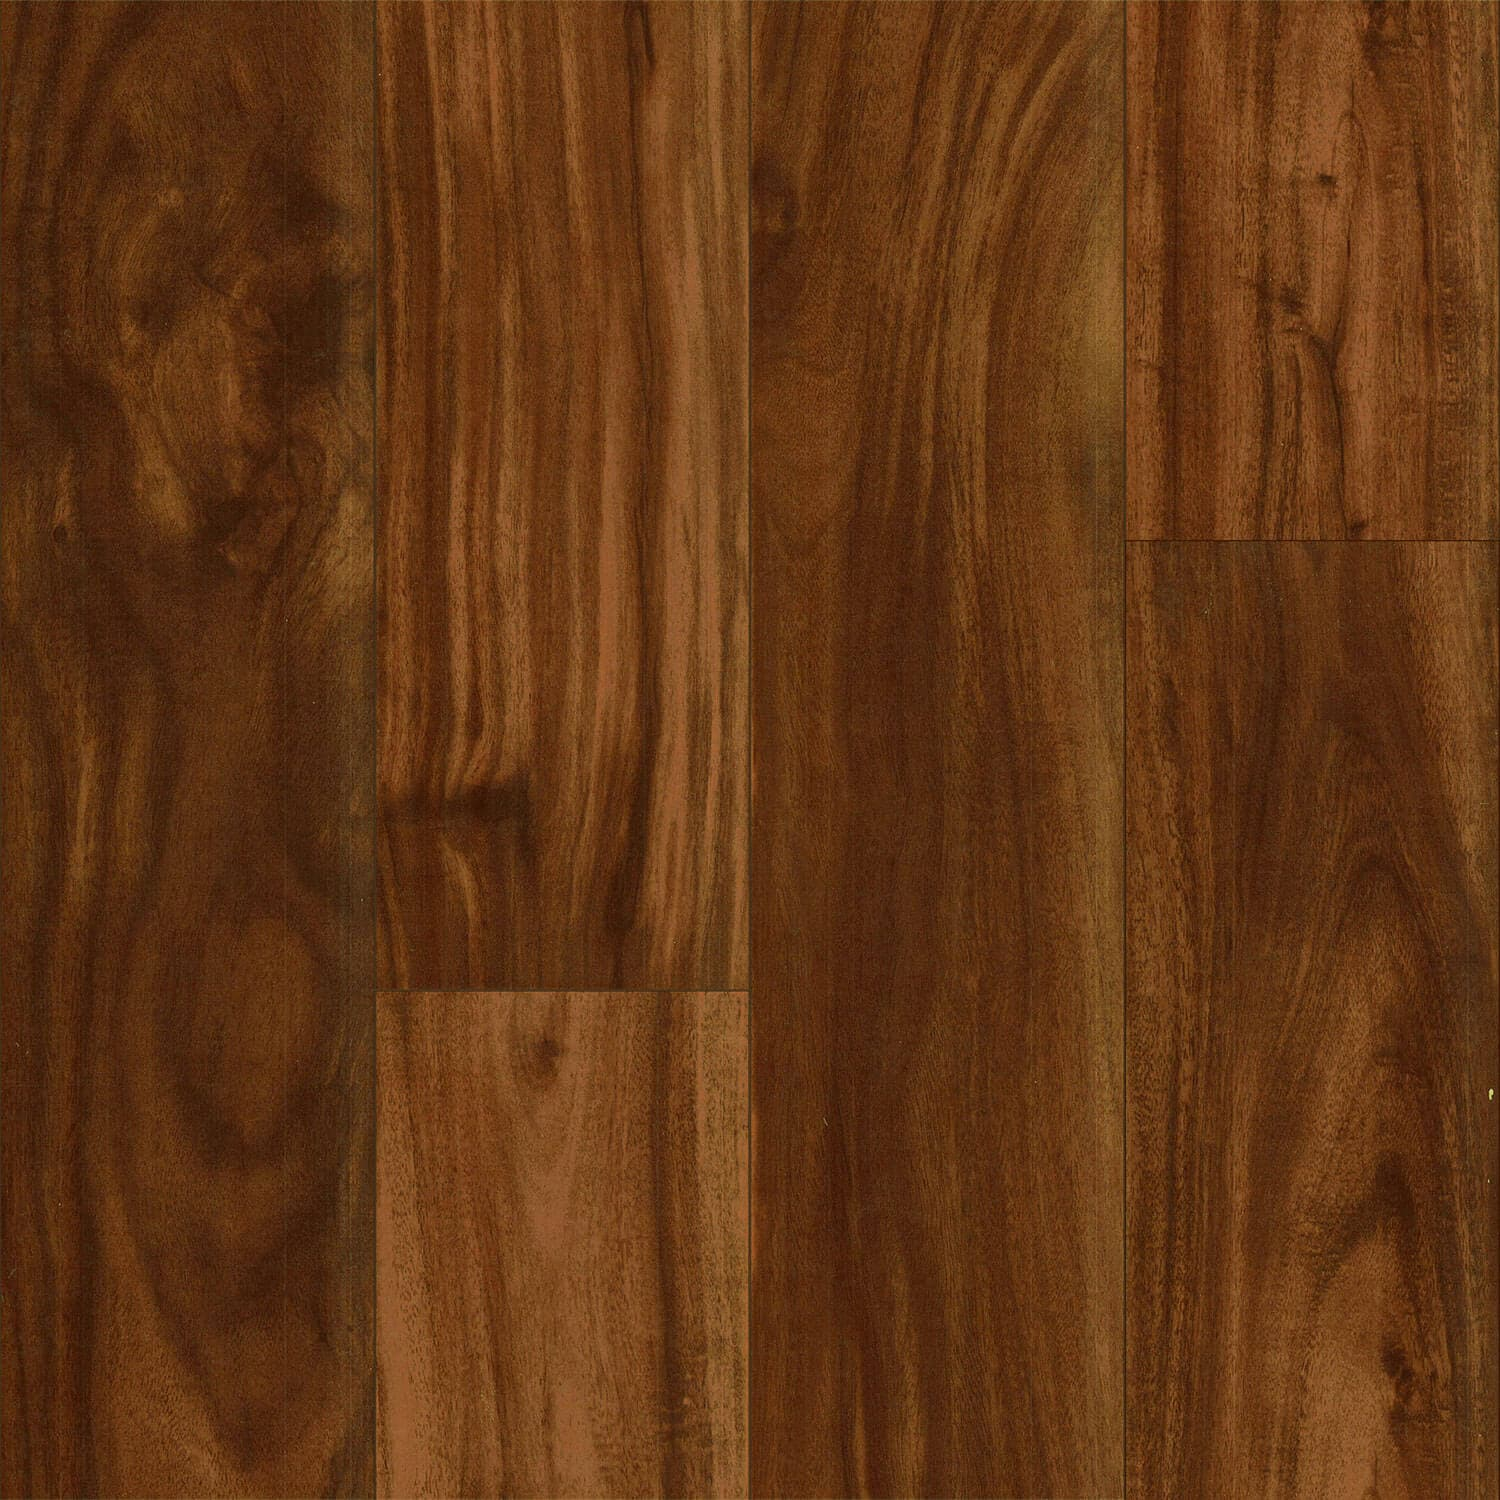 Acacia Laminate Flooring Of All Kinds Loccie Better